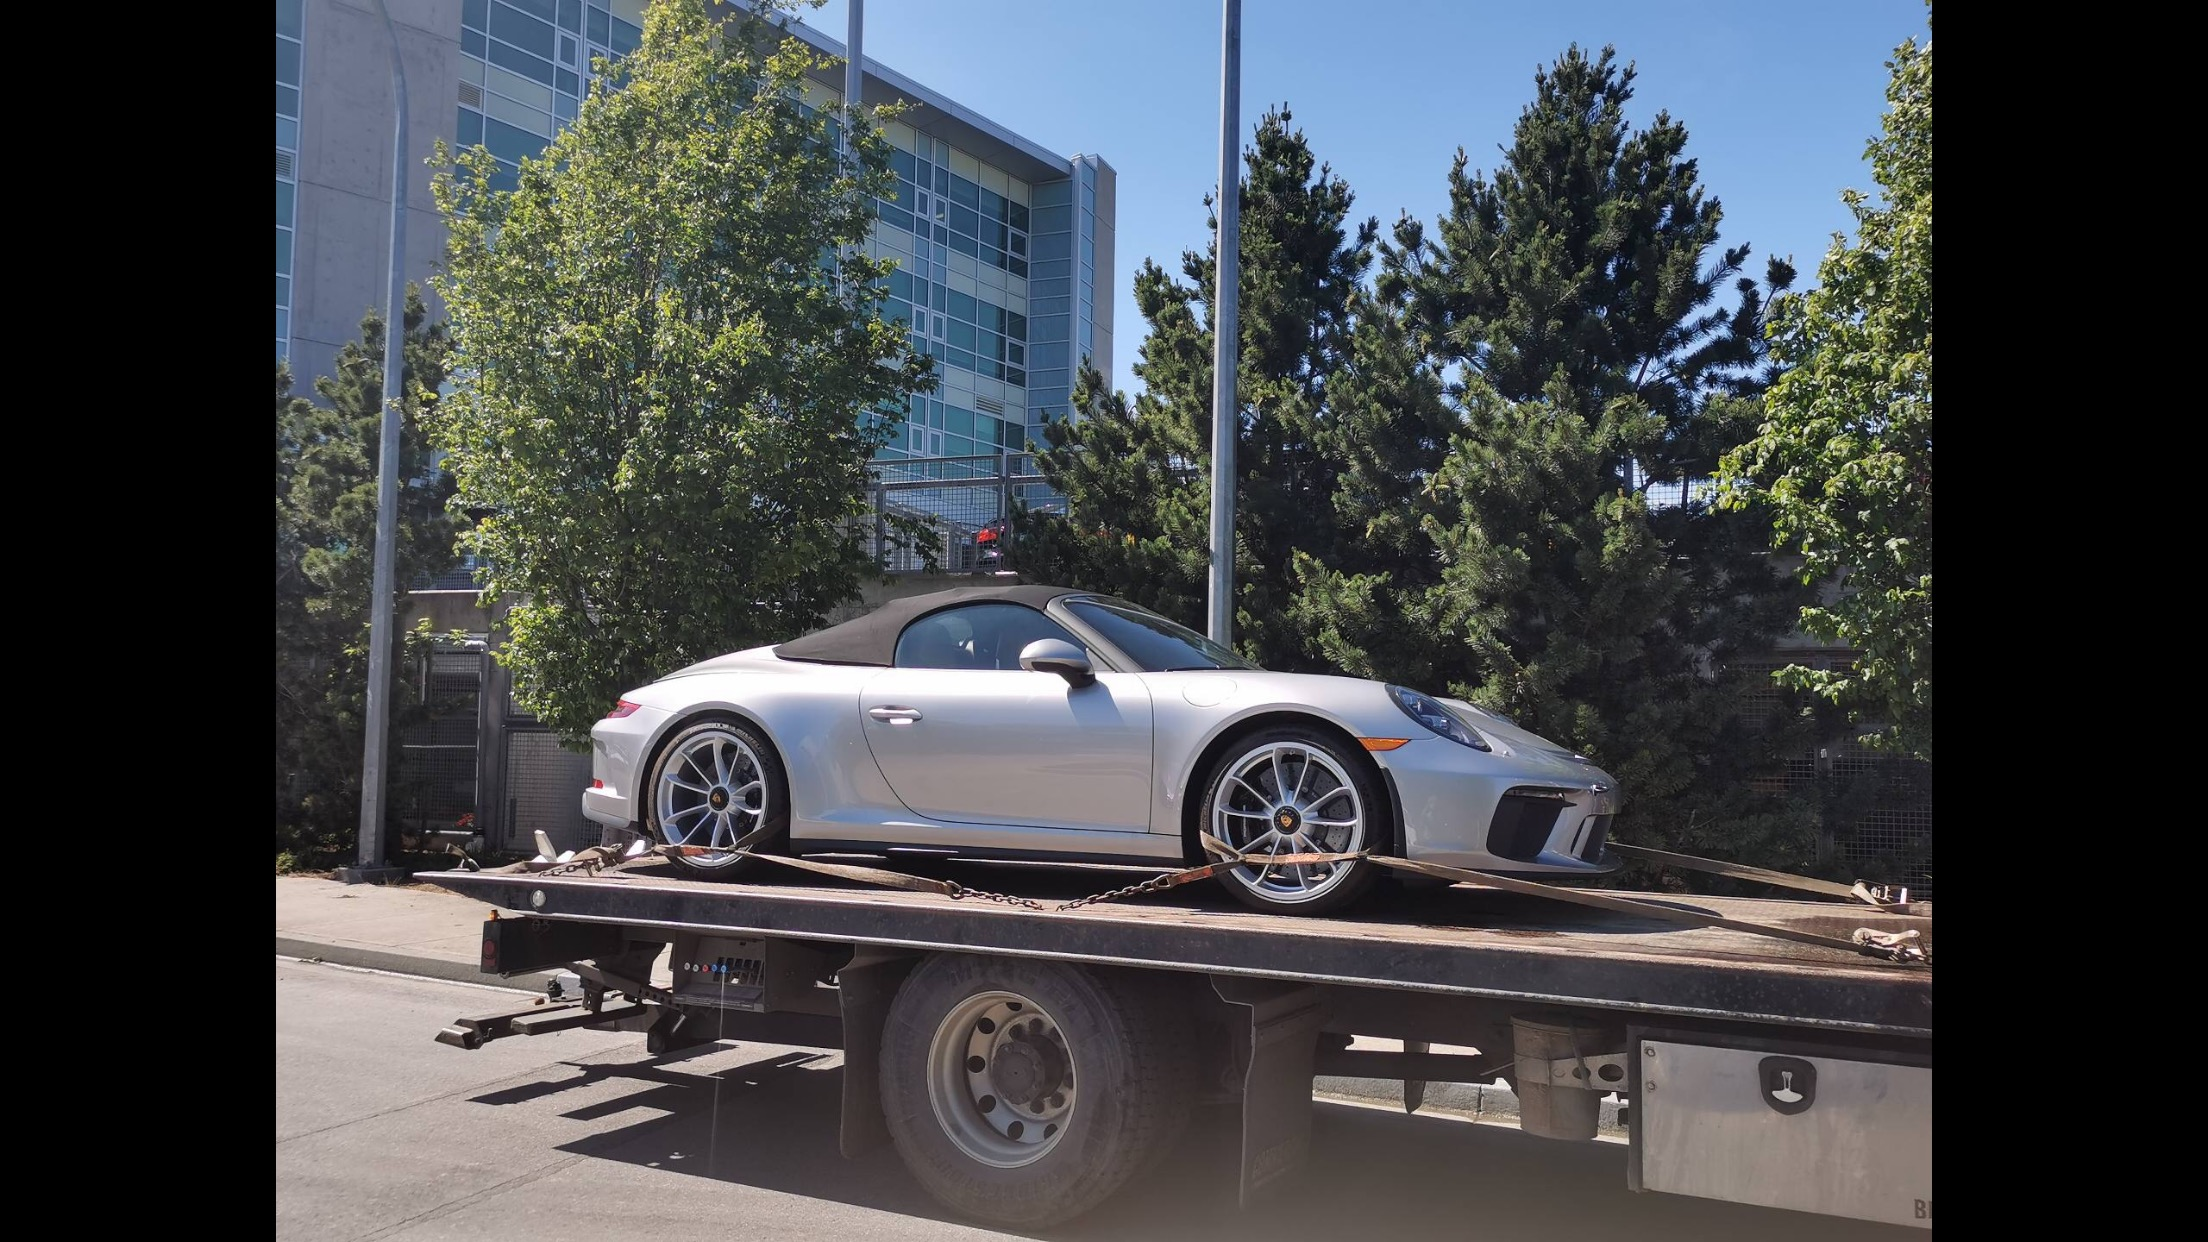 Exotic Car being towed